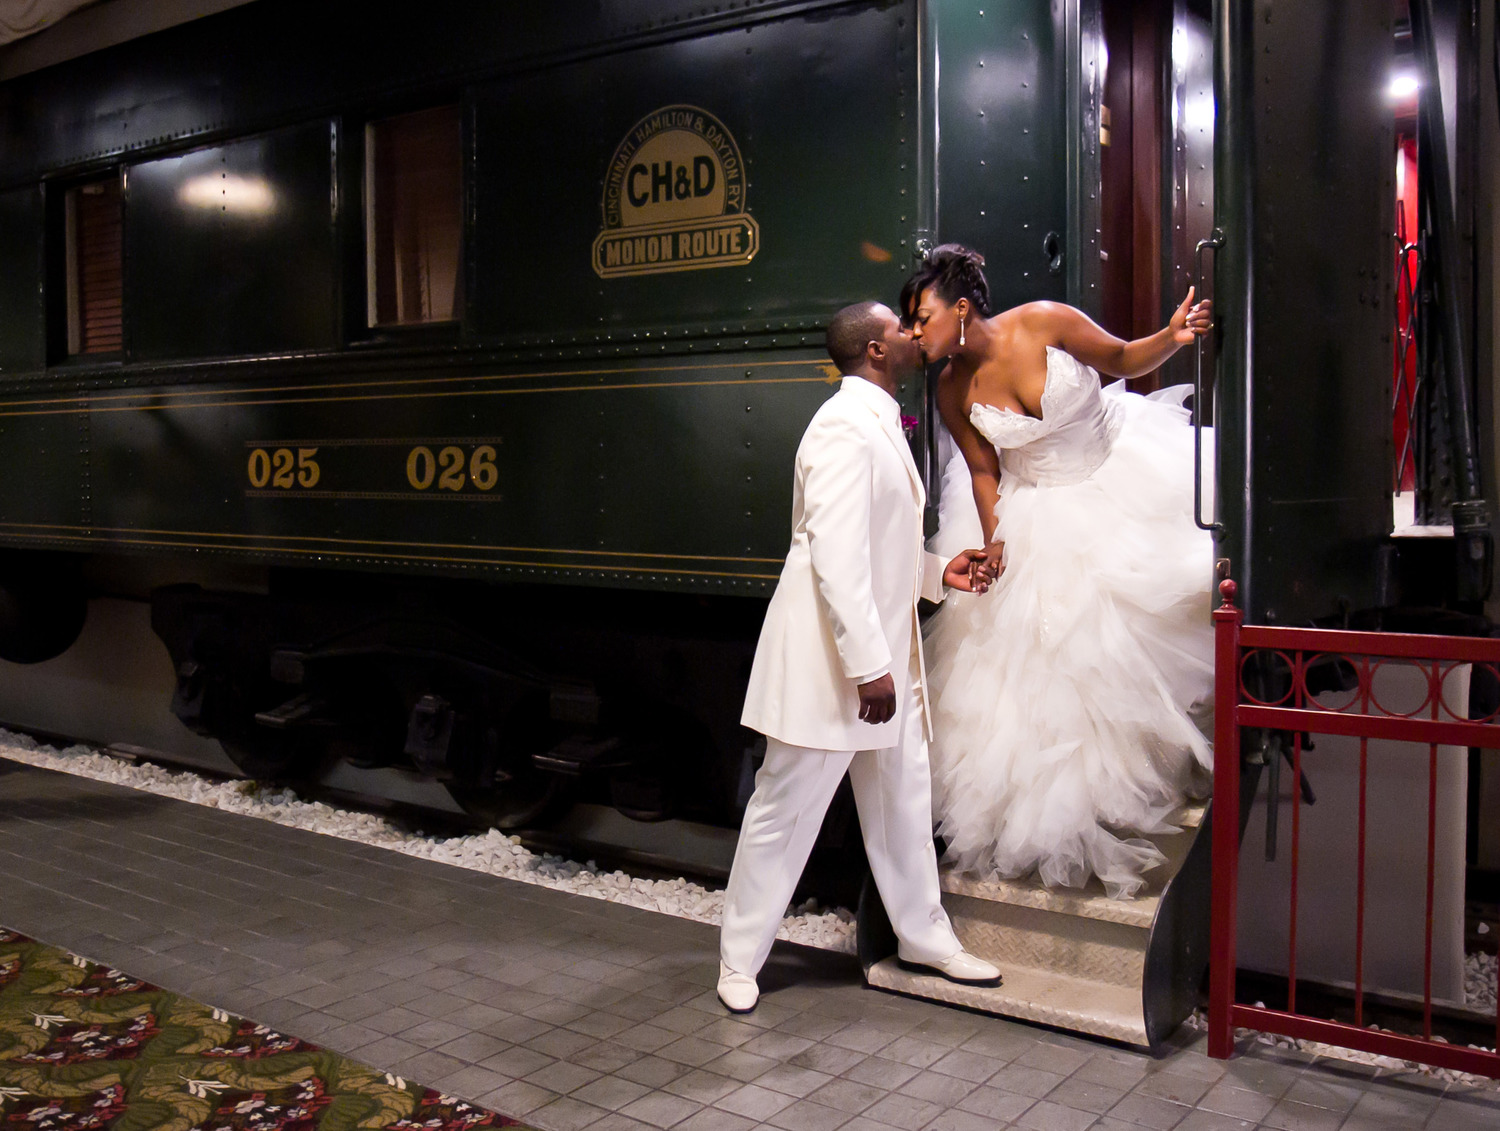 Photograph of a bride and groom kissing in front of a train